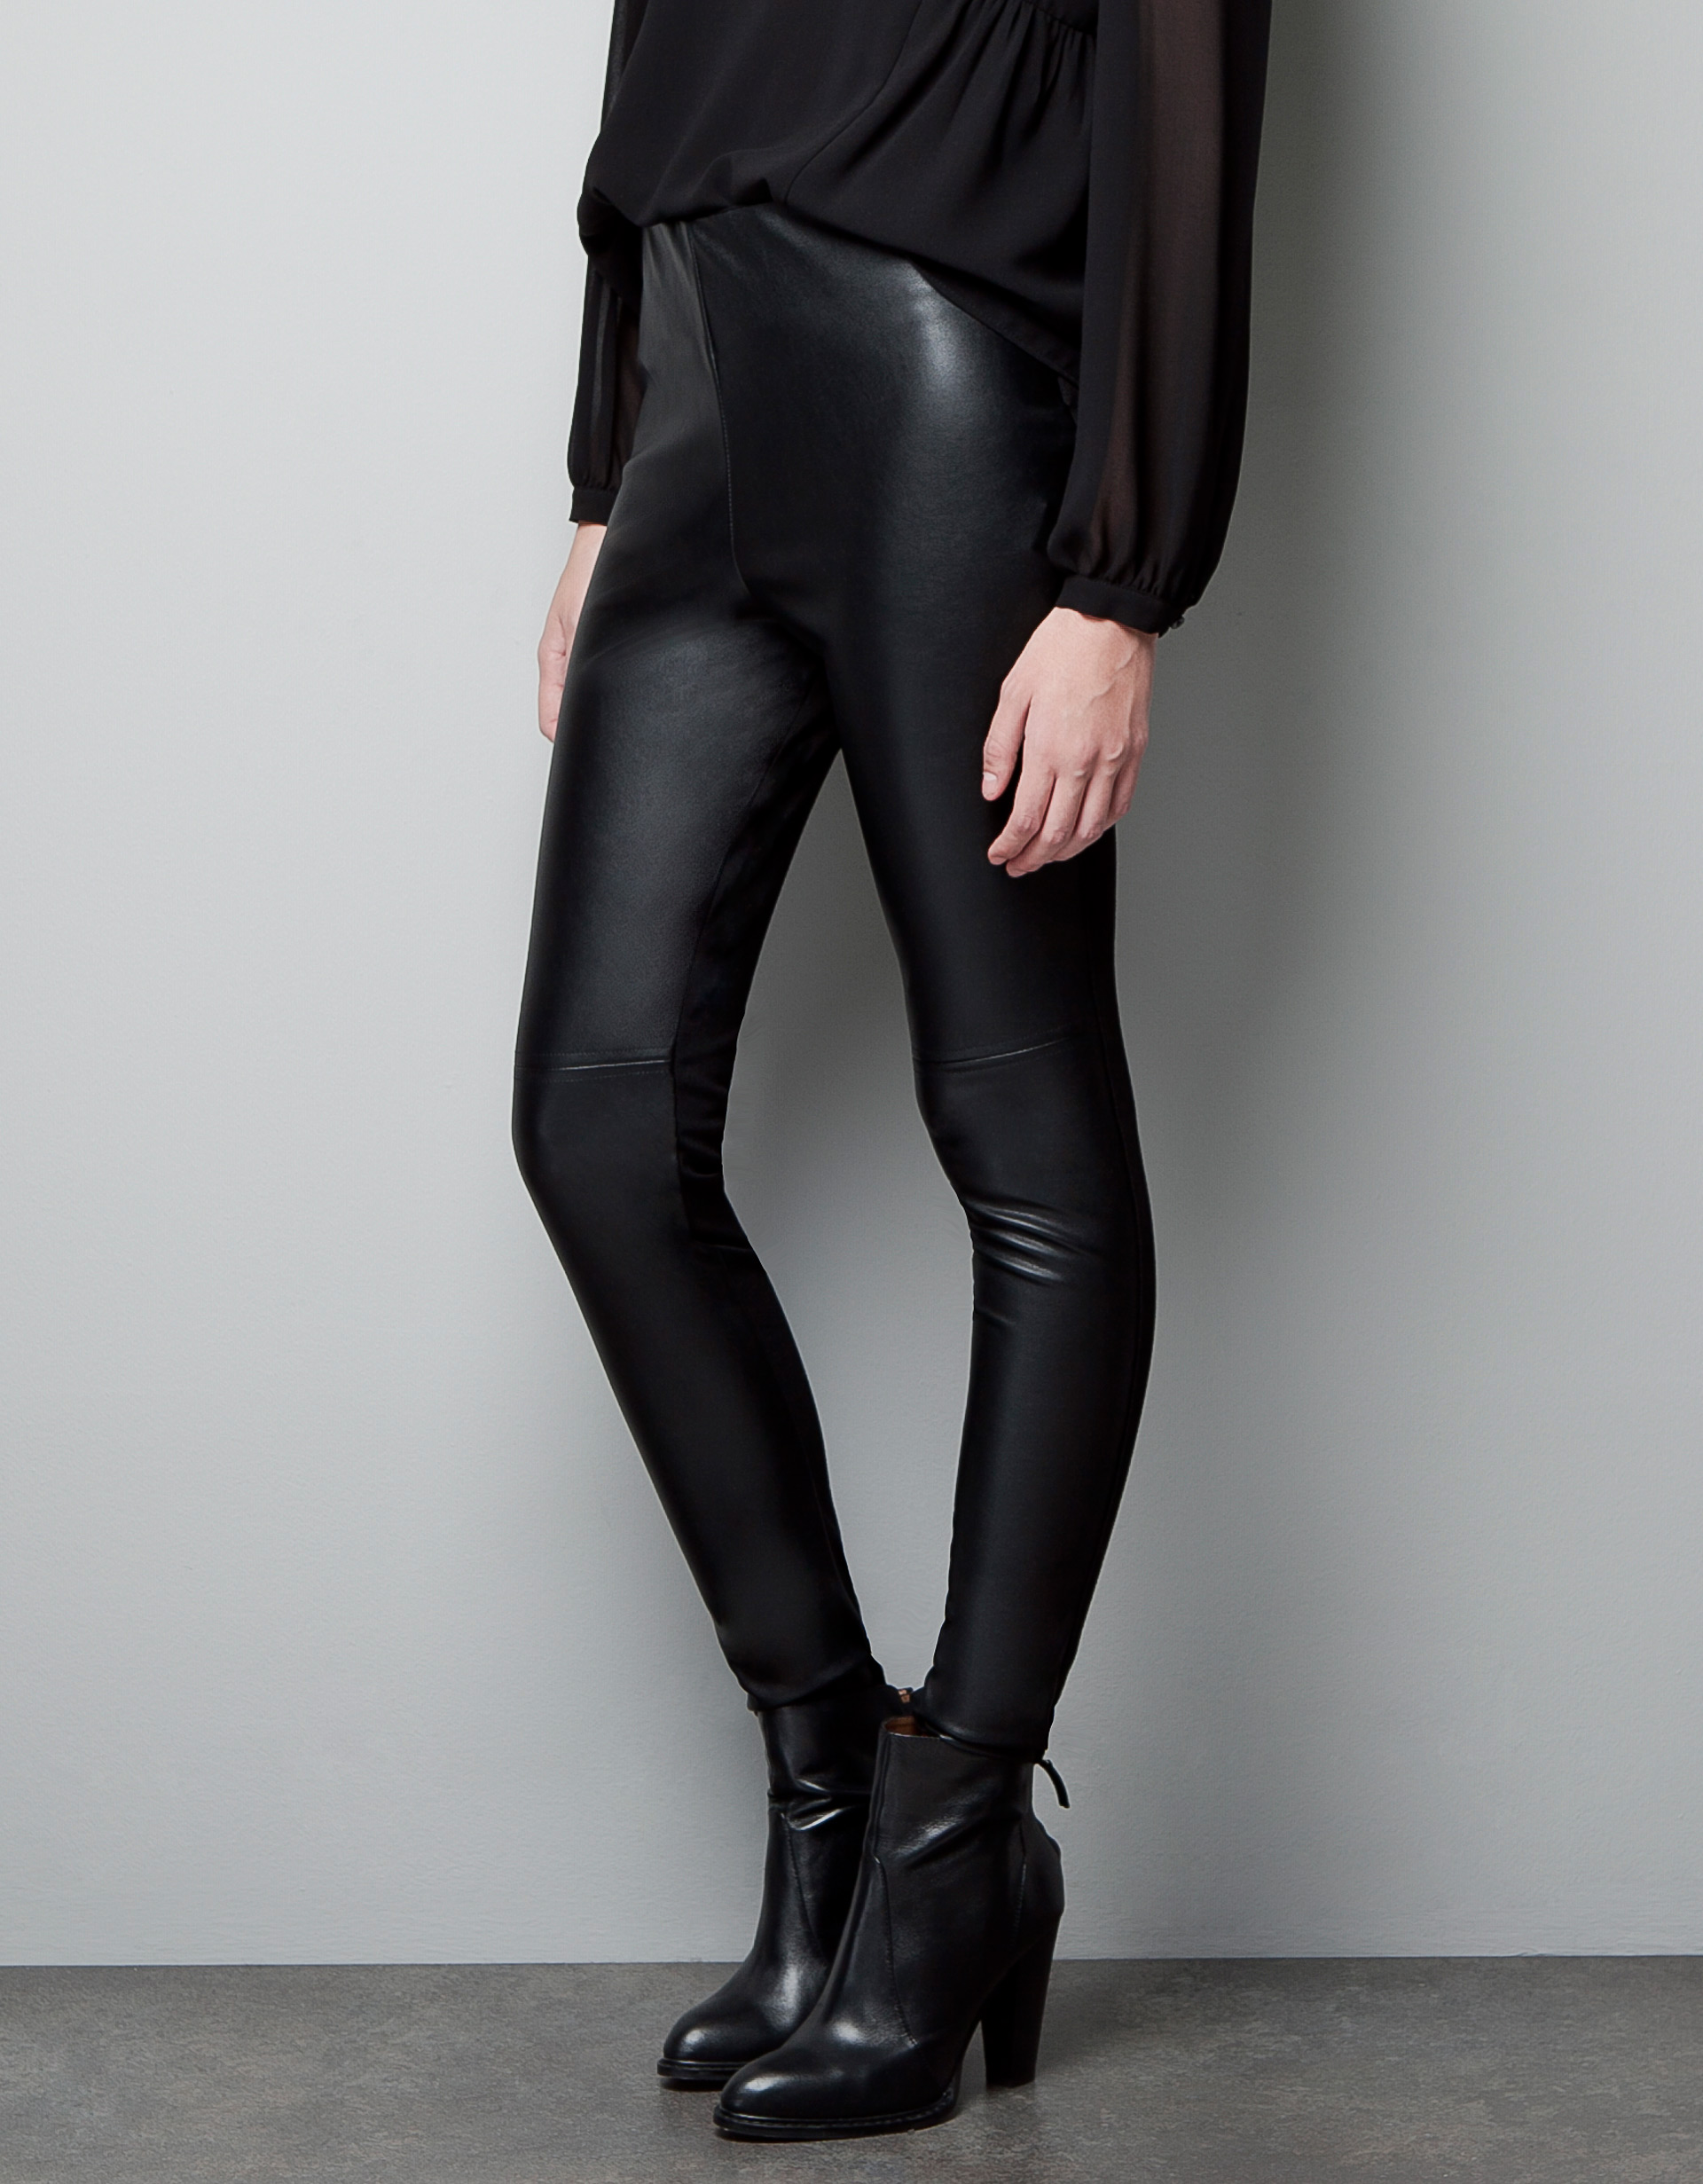 b4e2219be6a26c Zara Faux Leather Leggings · foxio · Online Store Powered by Storenvy